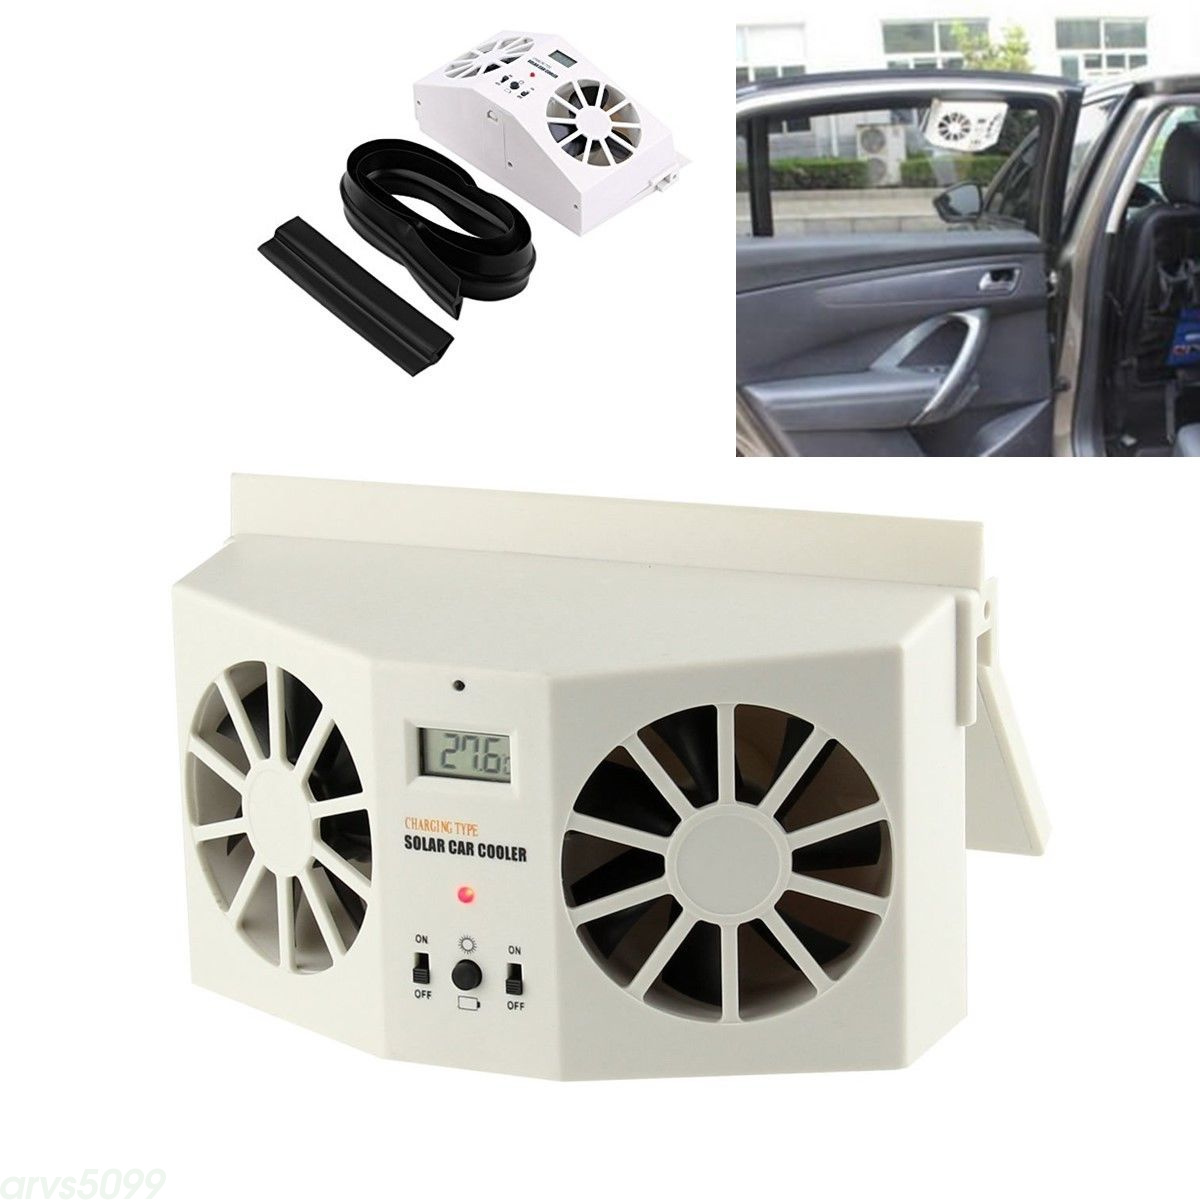 Solar Powered Auto Car Window Air Vent Ventilator Mini Air